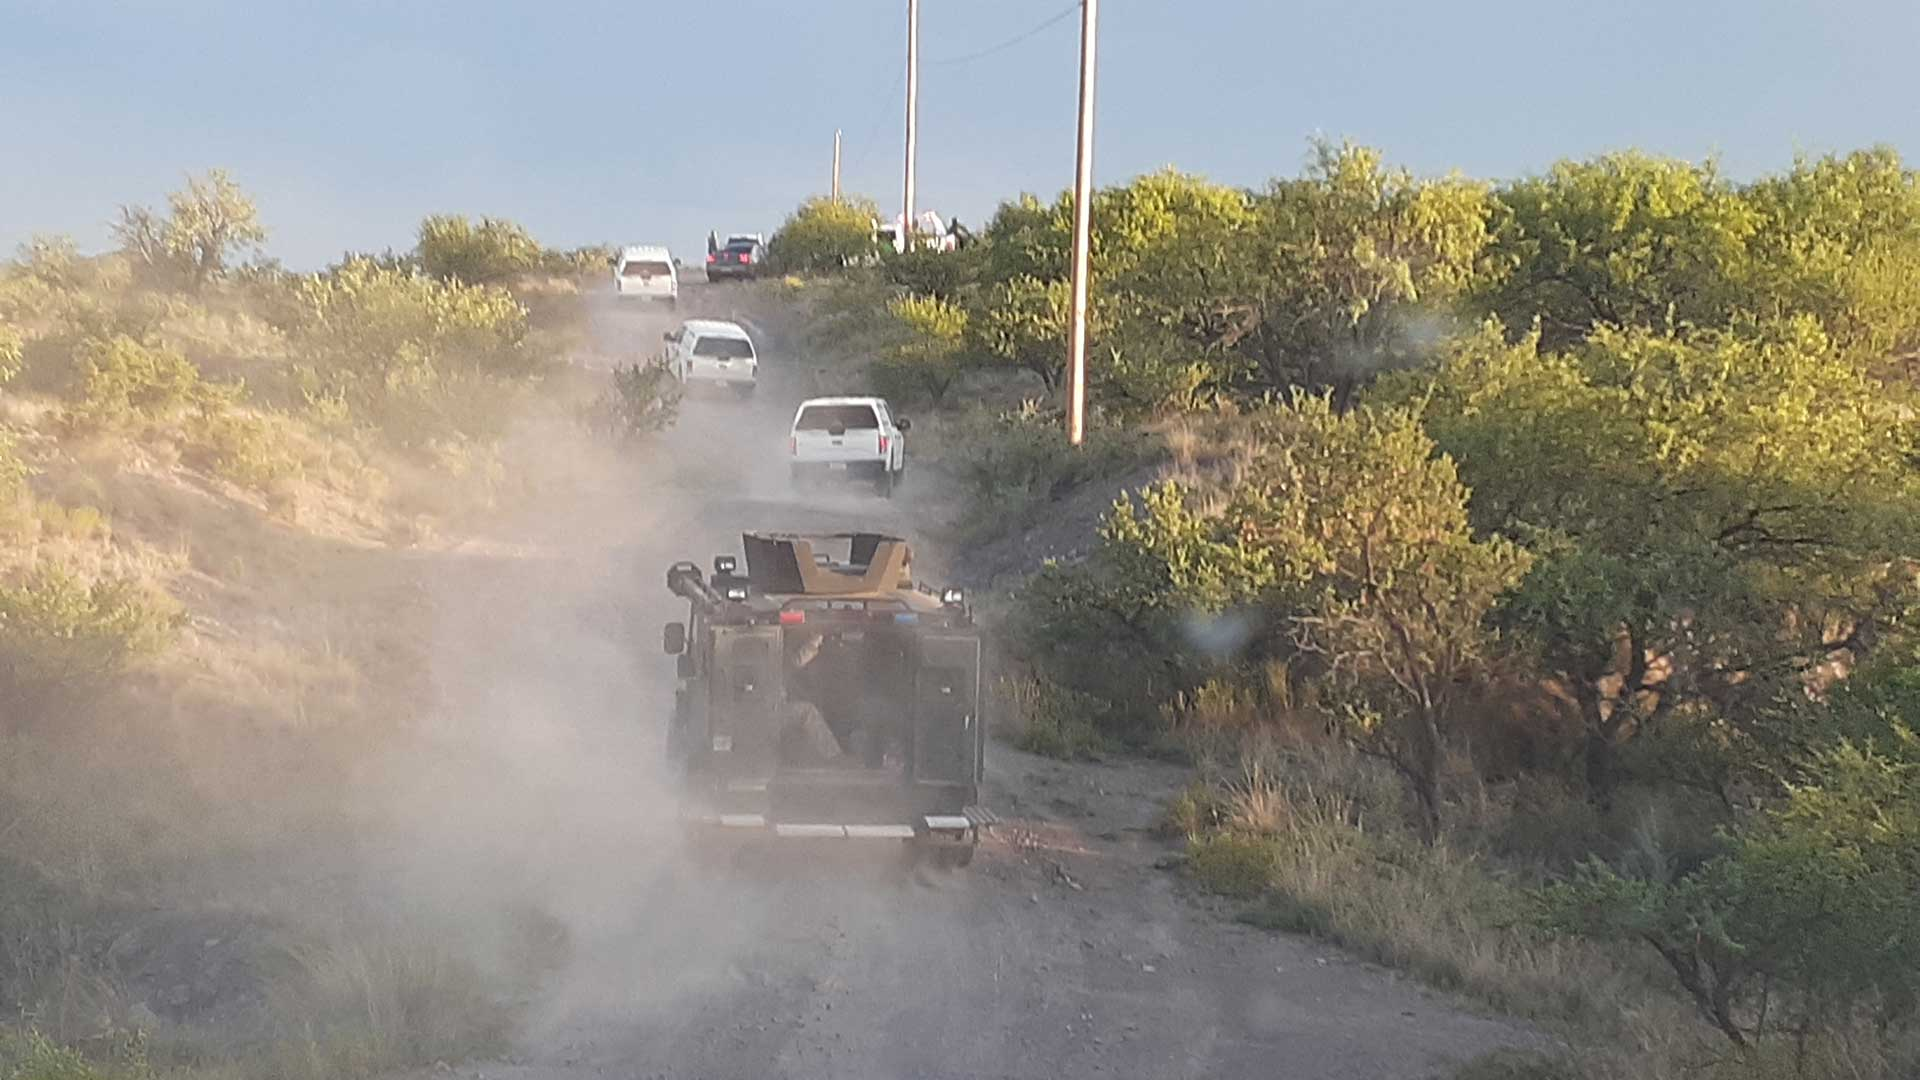 A photo accompanying a media release from No More Deaths saying Border Patrol on Friday, July 31 raided a camp where the group was providing aid.